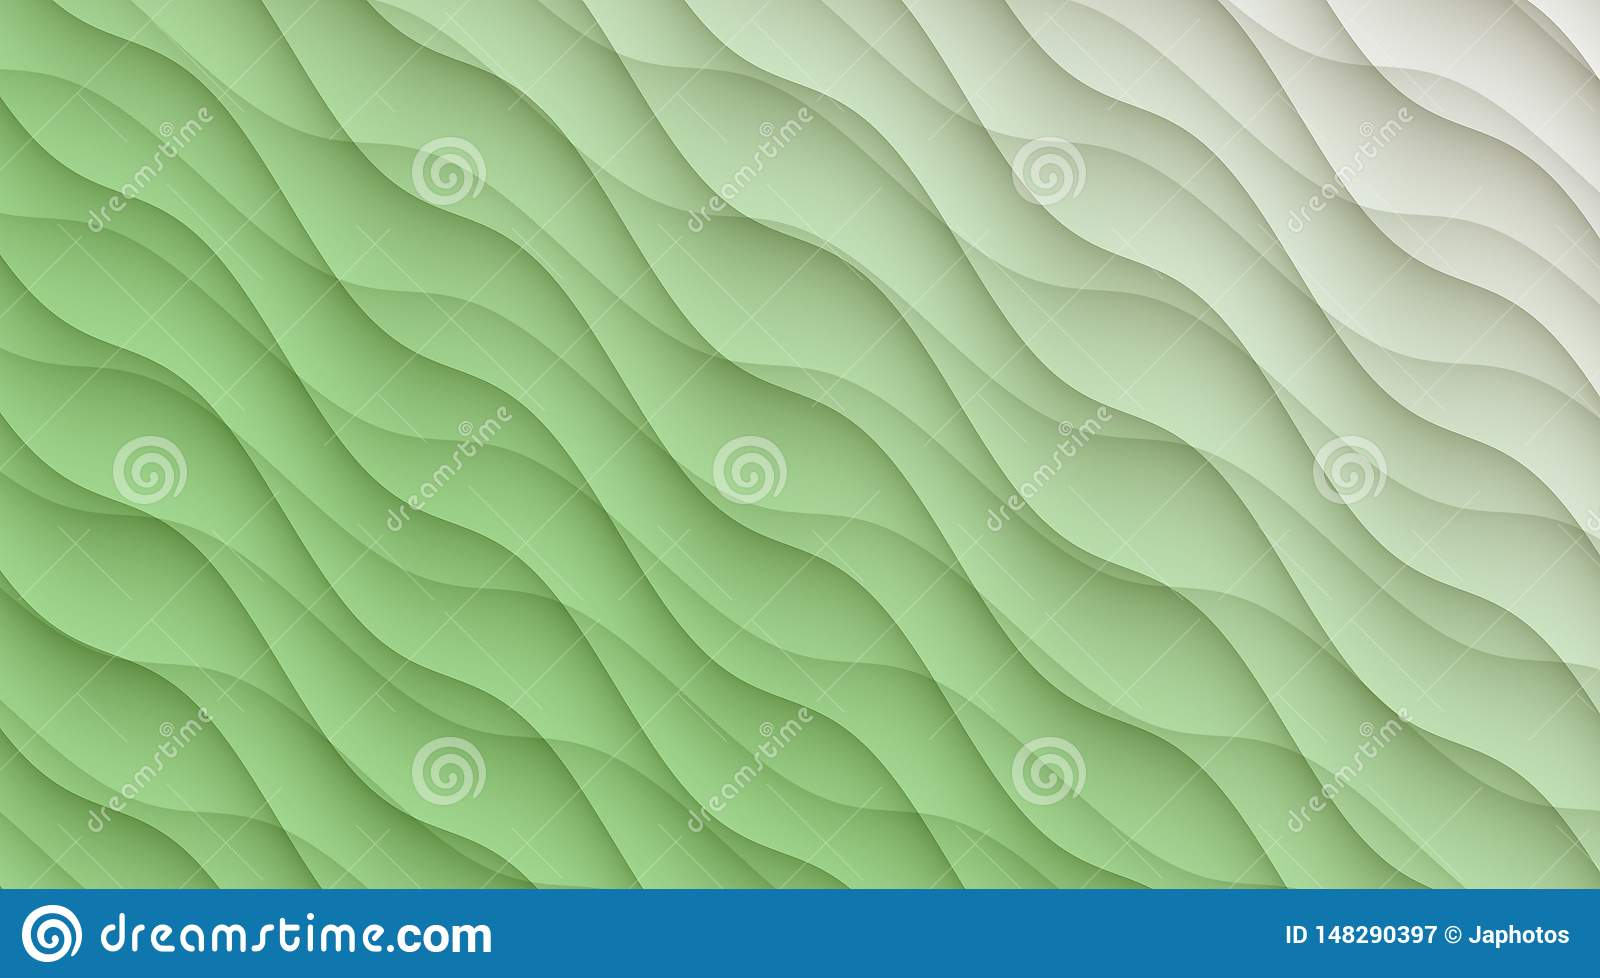 Light Mint Green And White Diagonal Curves Abstract